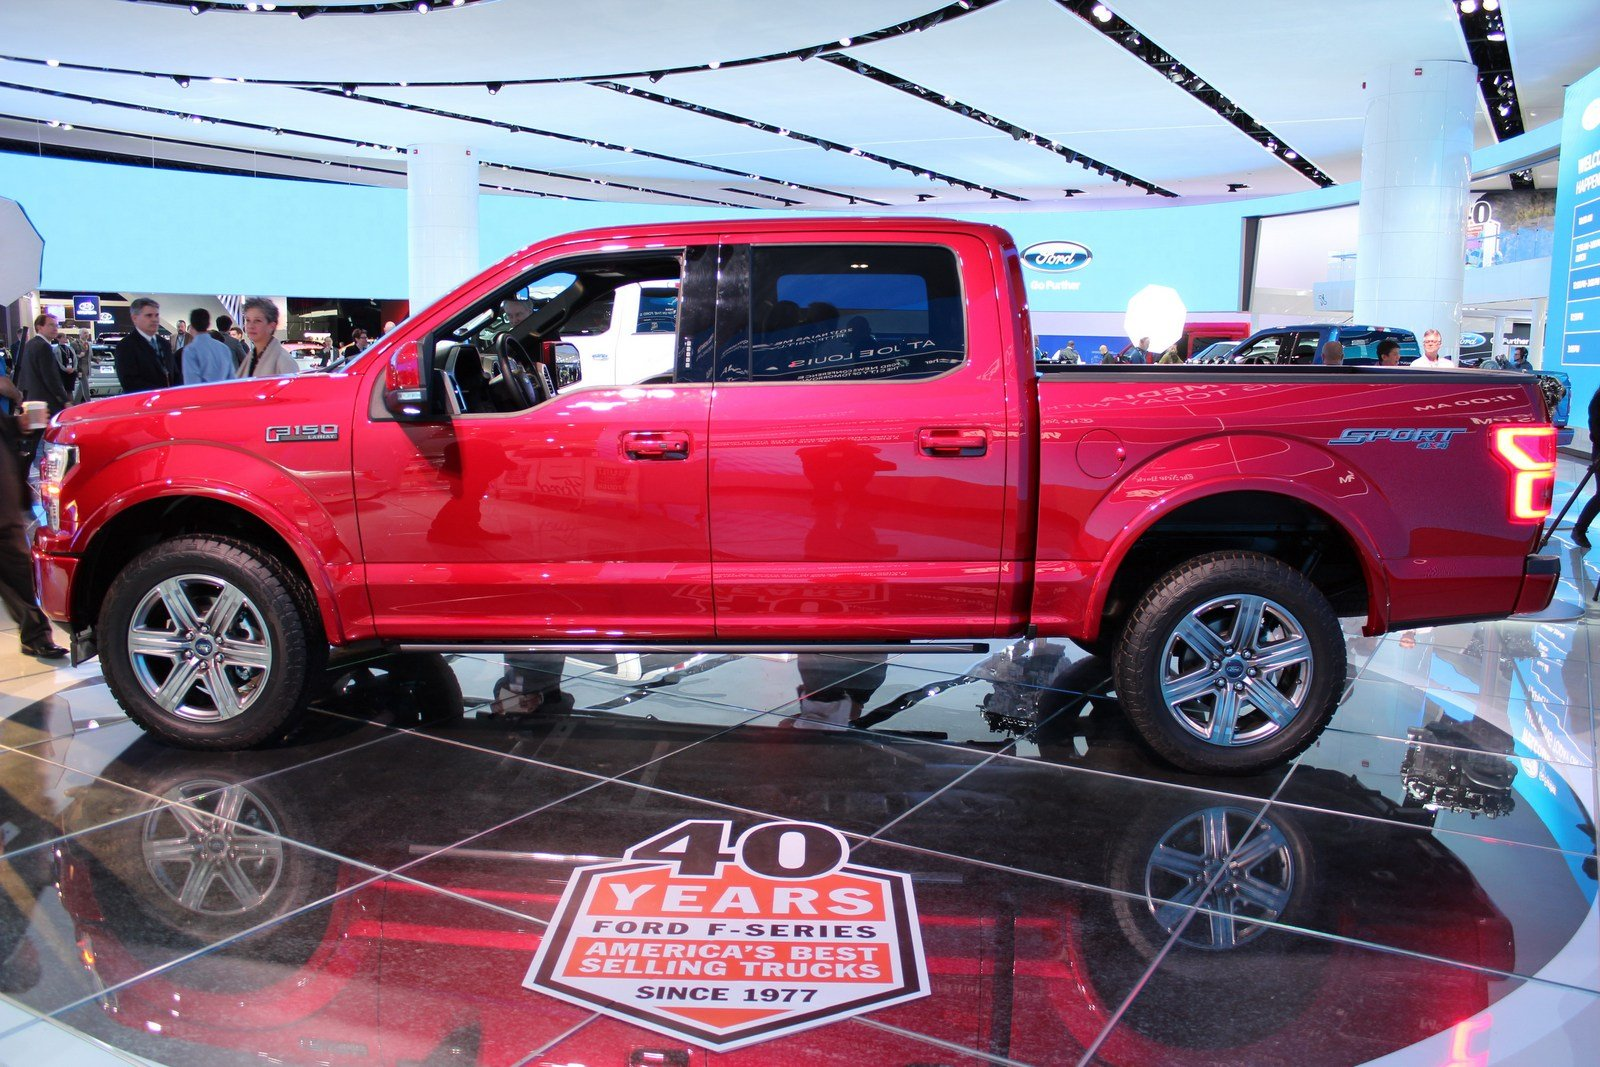 2018 ford f 150 picture 700990 truck review top speed. Black Bedroom Furniture Sets. Home Design Ideas